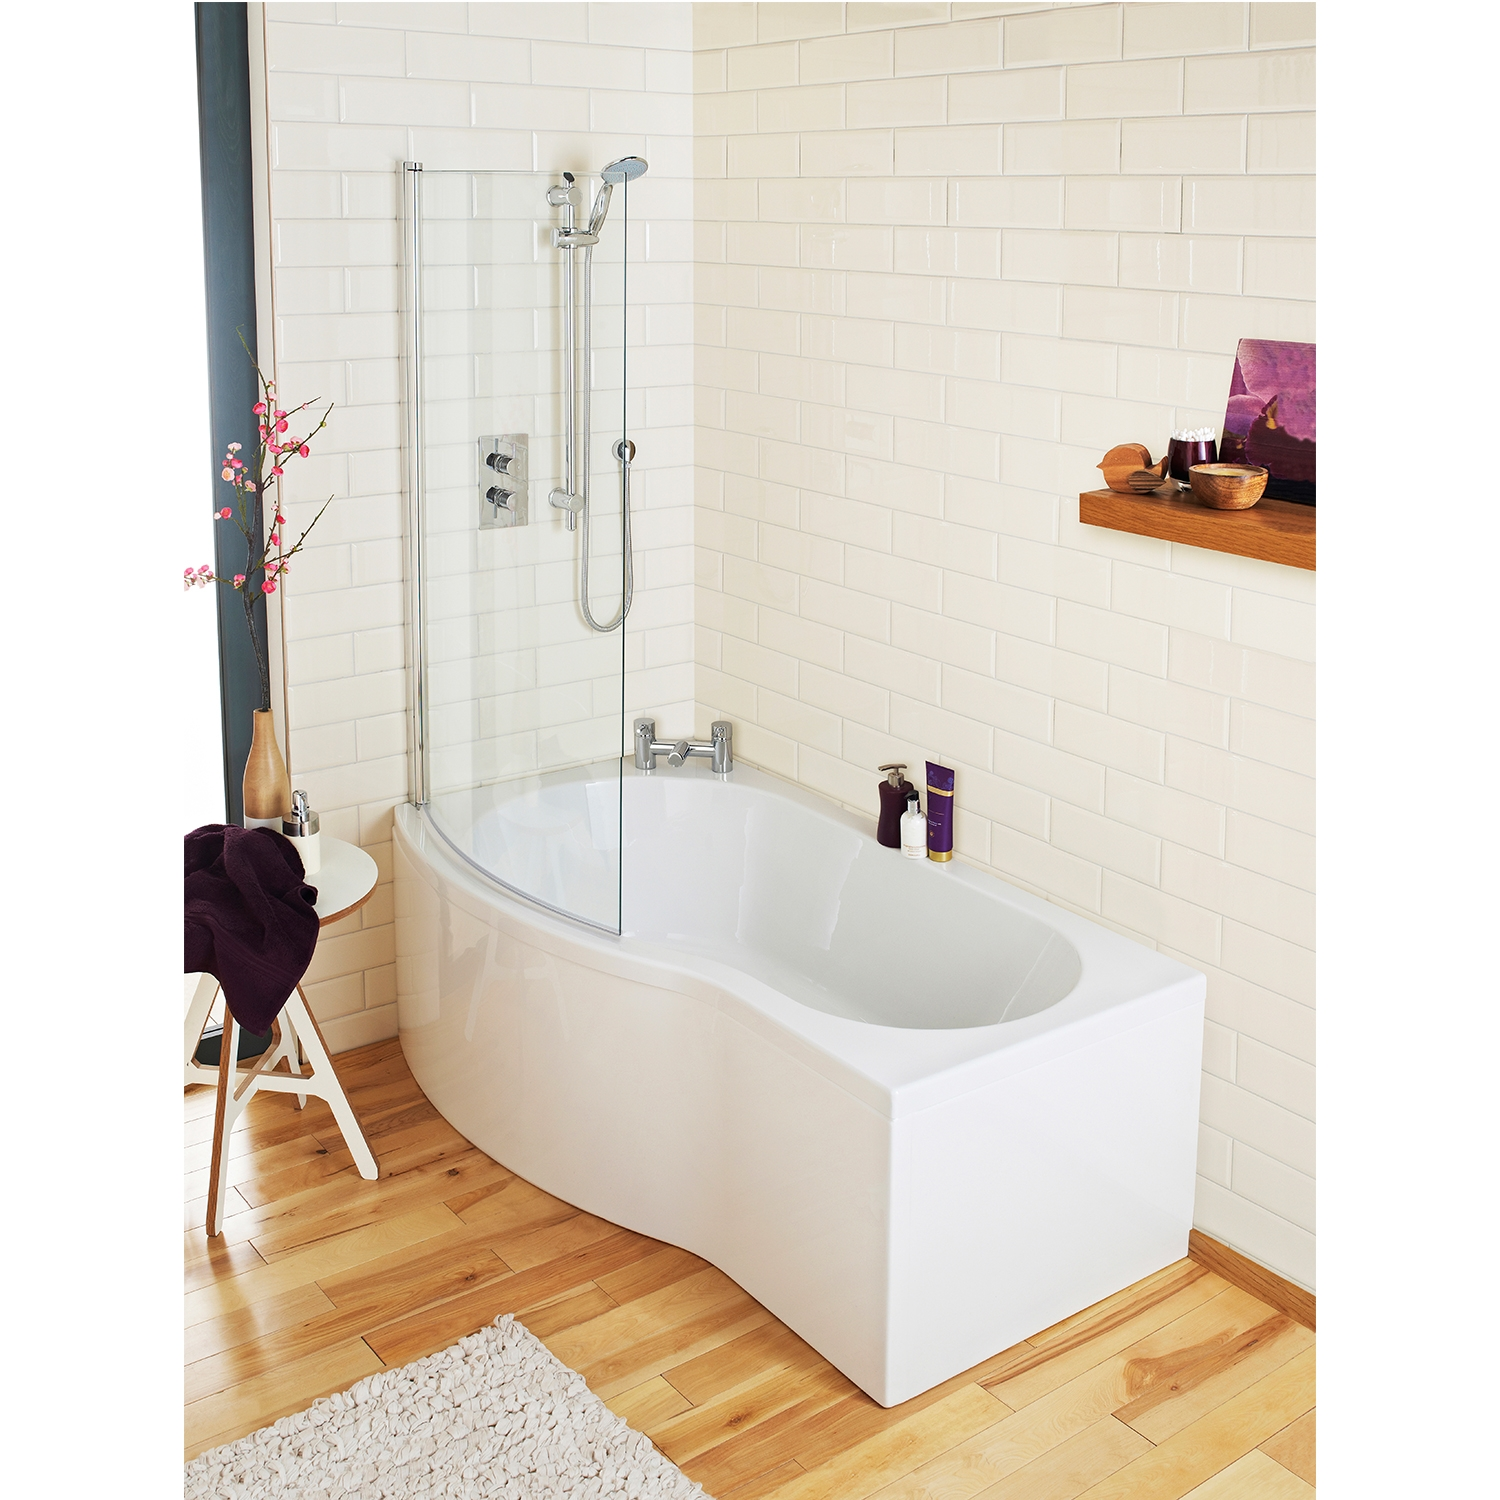 Premier B-Shaped Curved Shower Bath 1700mm x 735mm/800mm Left Handed